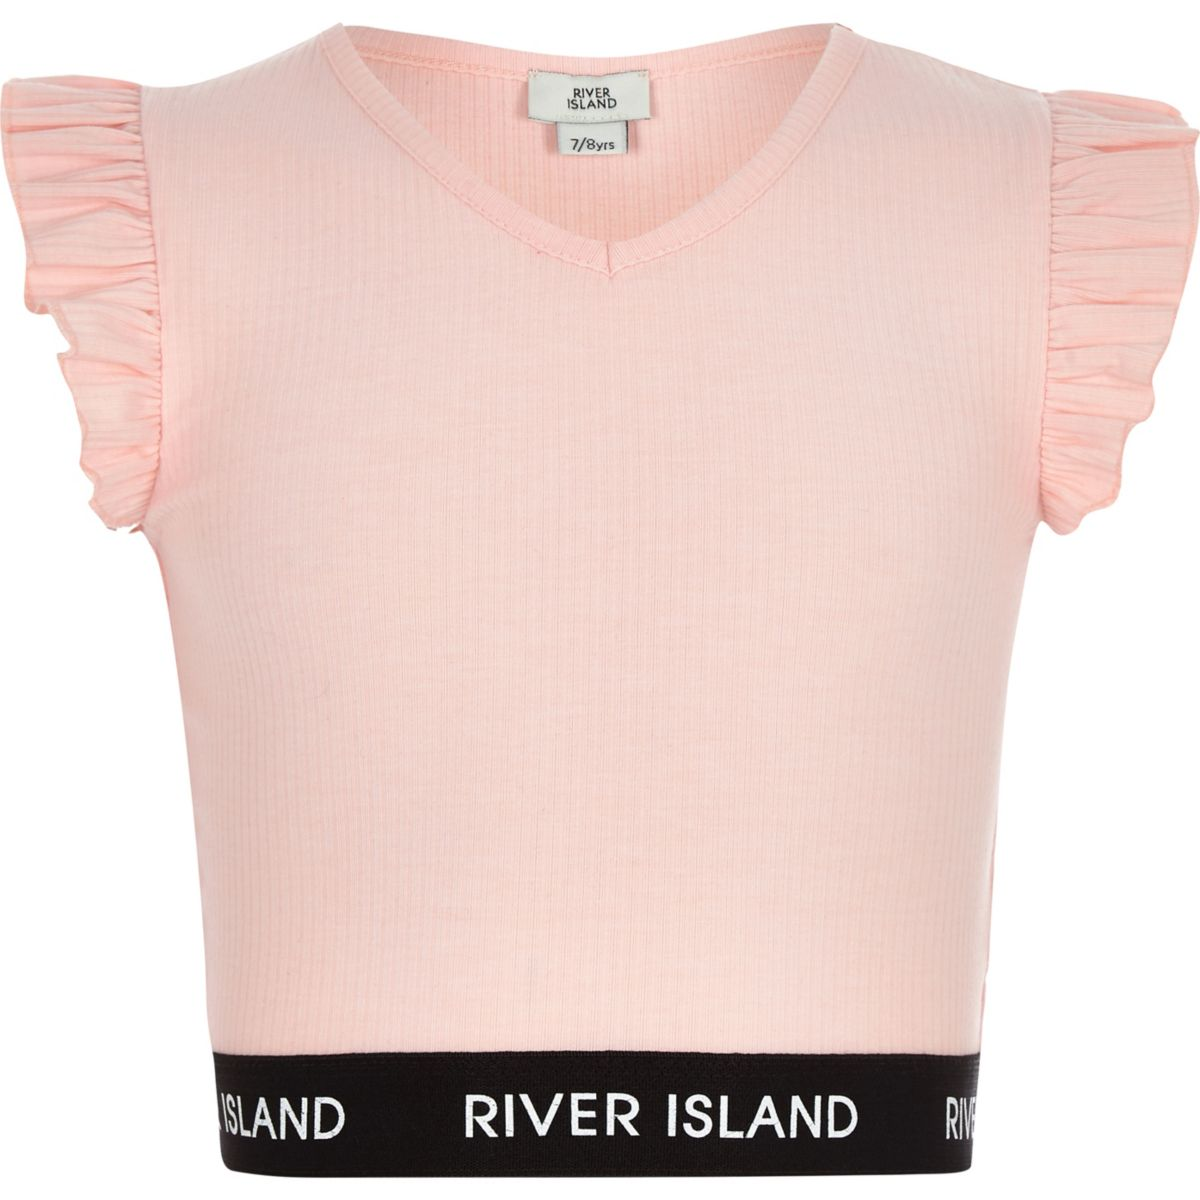 Girls pink frill sleeveless crop top